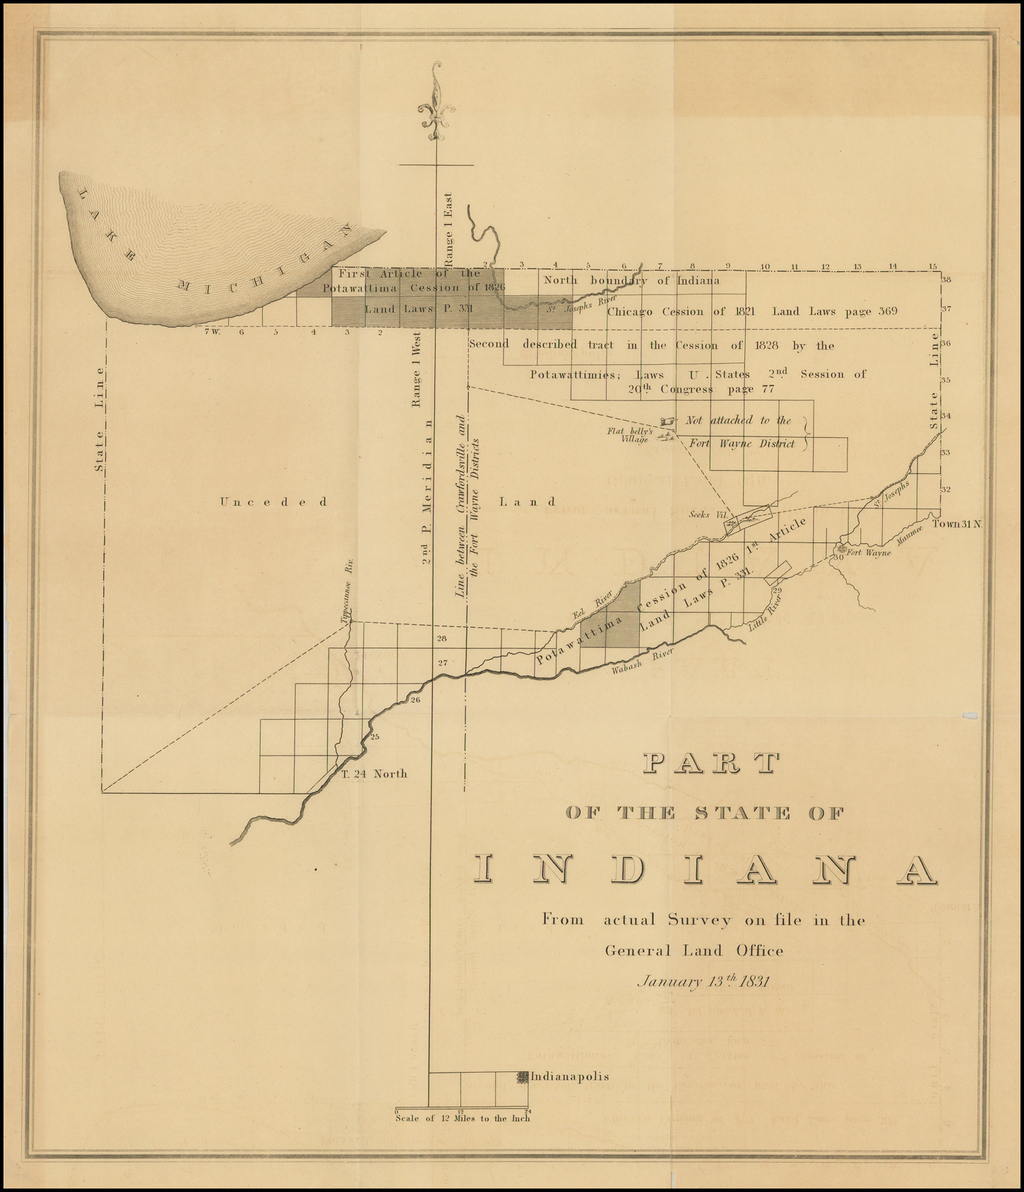 Part of the State of Indiana From actual Survey on file in the General Land Office January 13th 1831. By